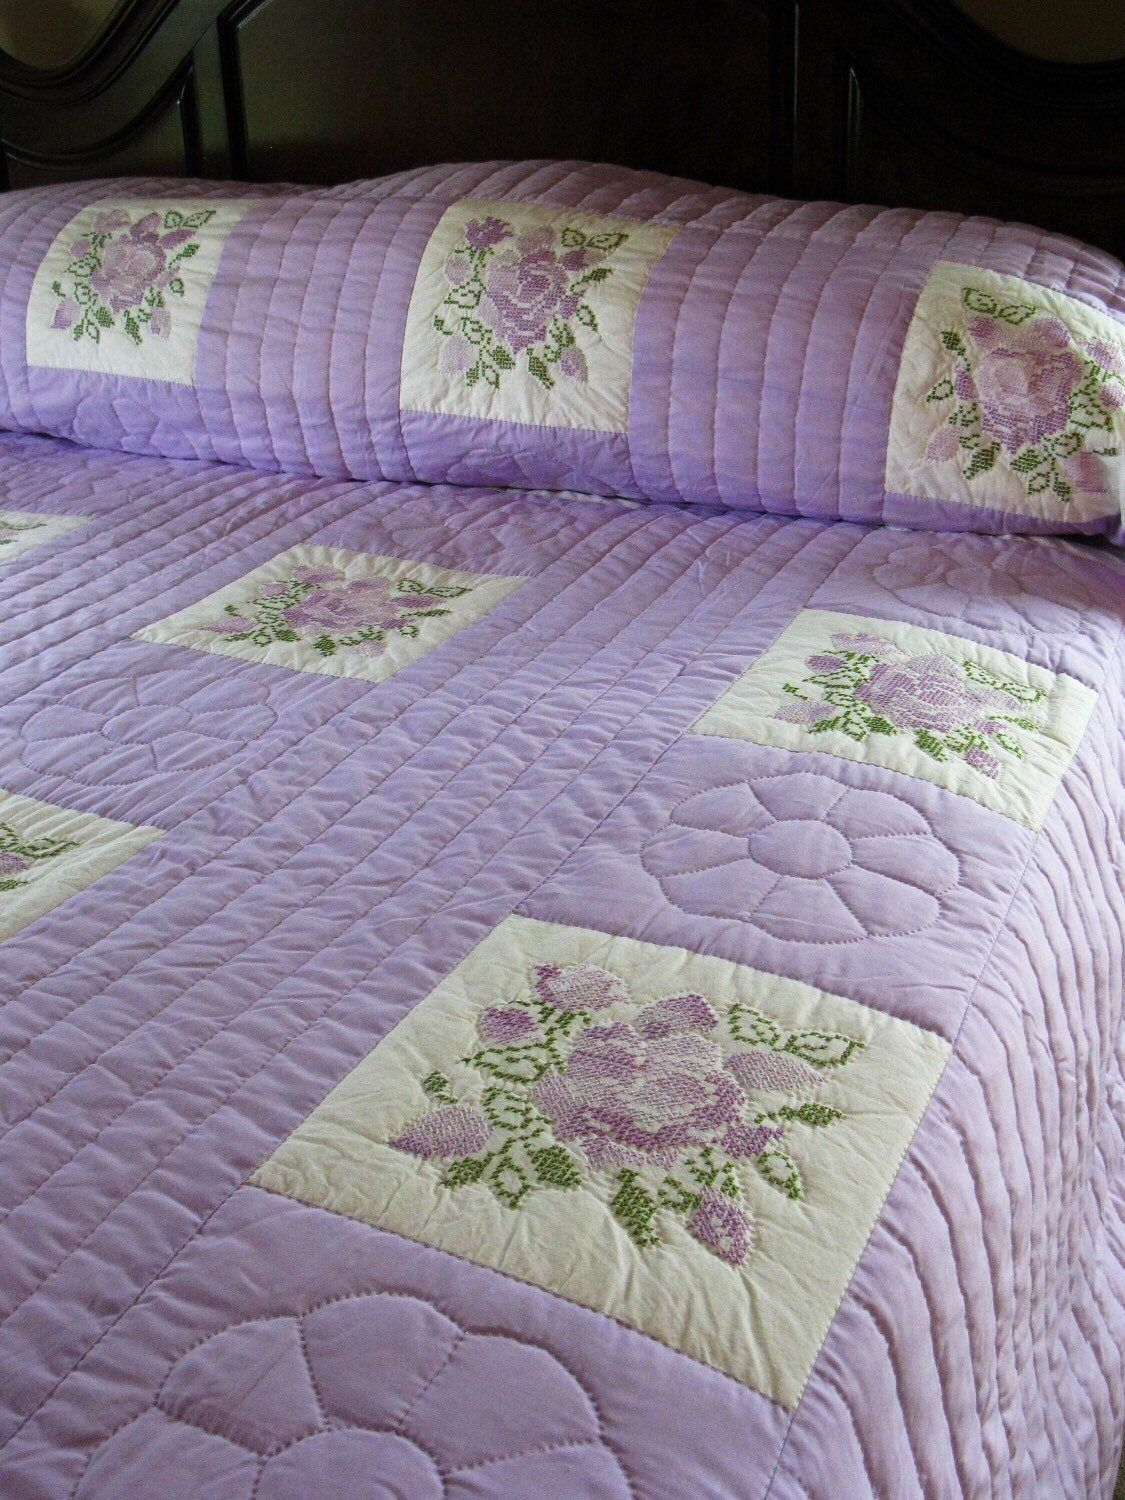 HUGE KING SIZE Hand Embroidered Cross stitch Floral Quilt